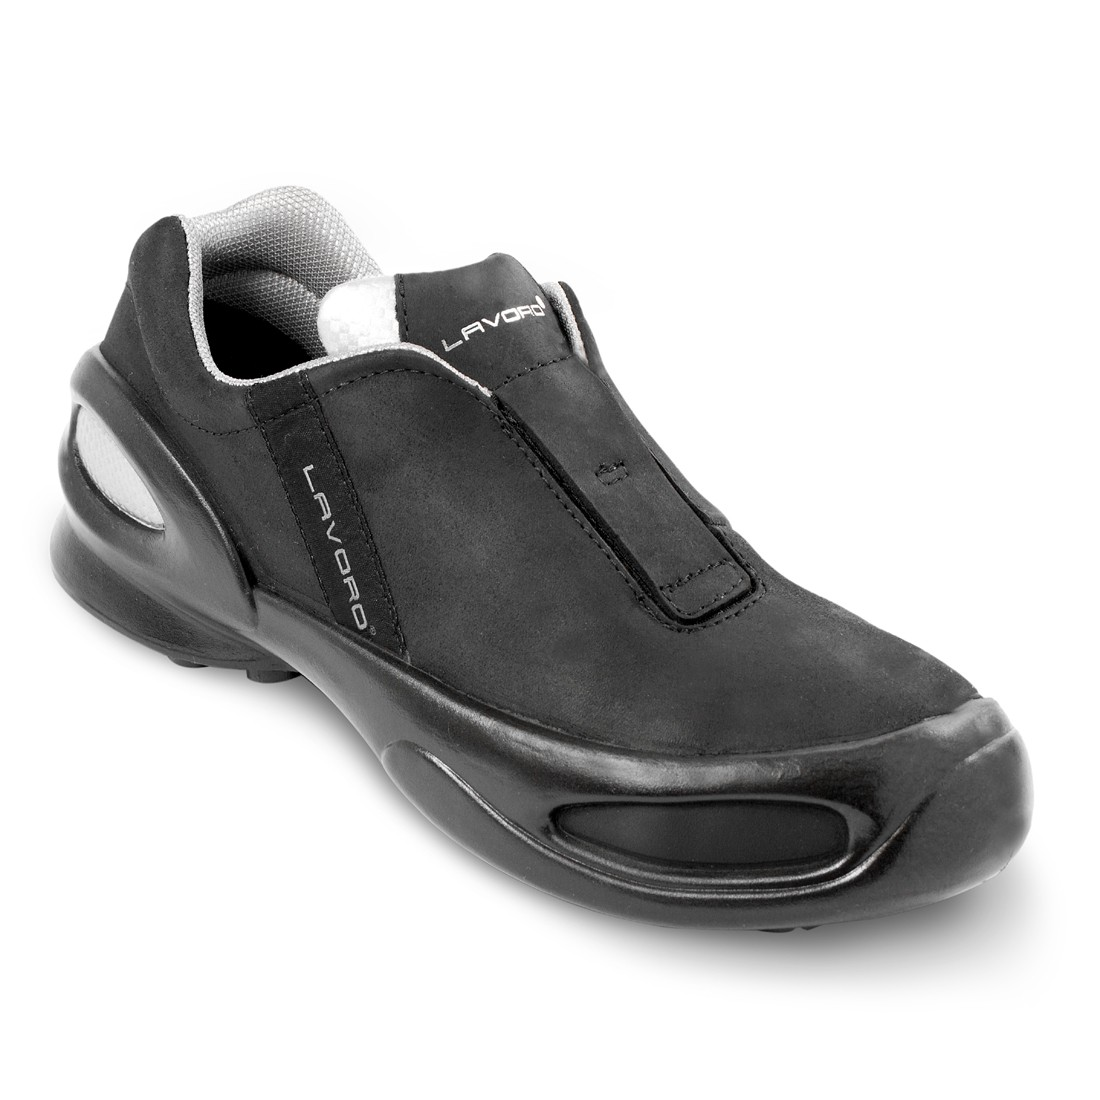 puma women's safety shoes uk | Early Intervention